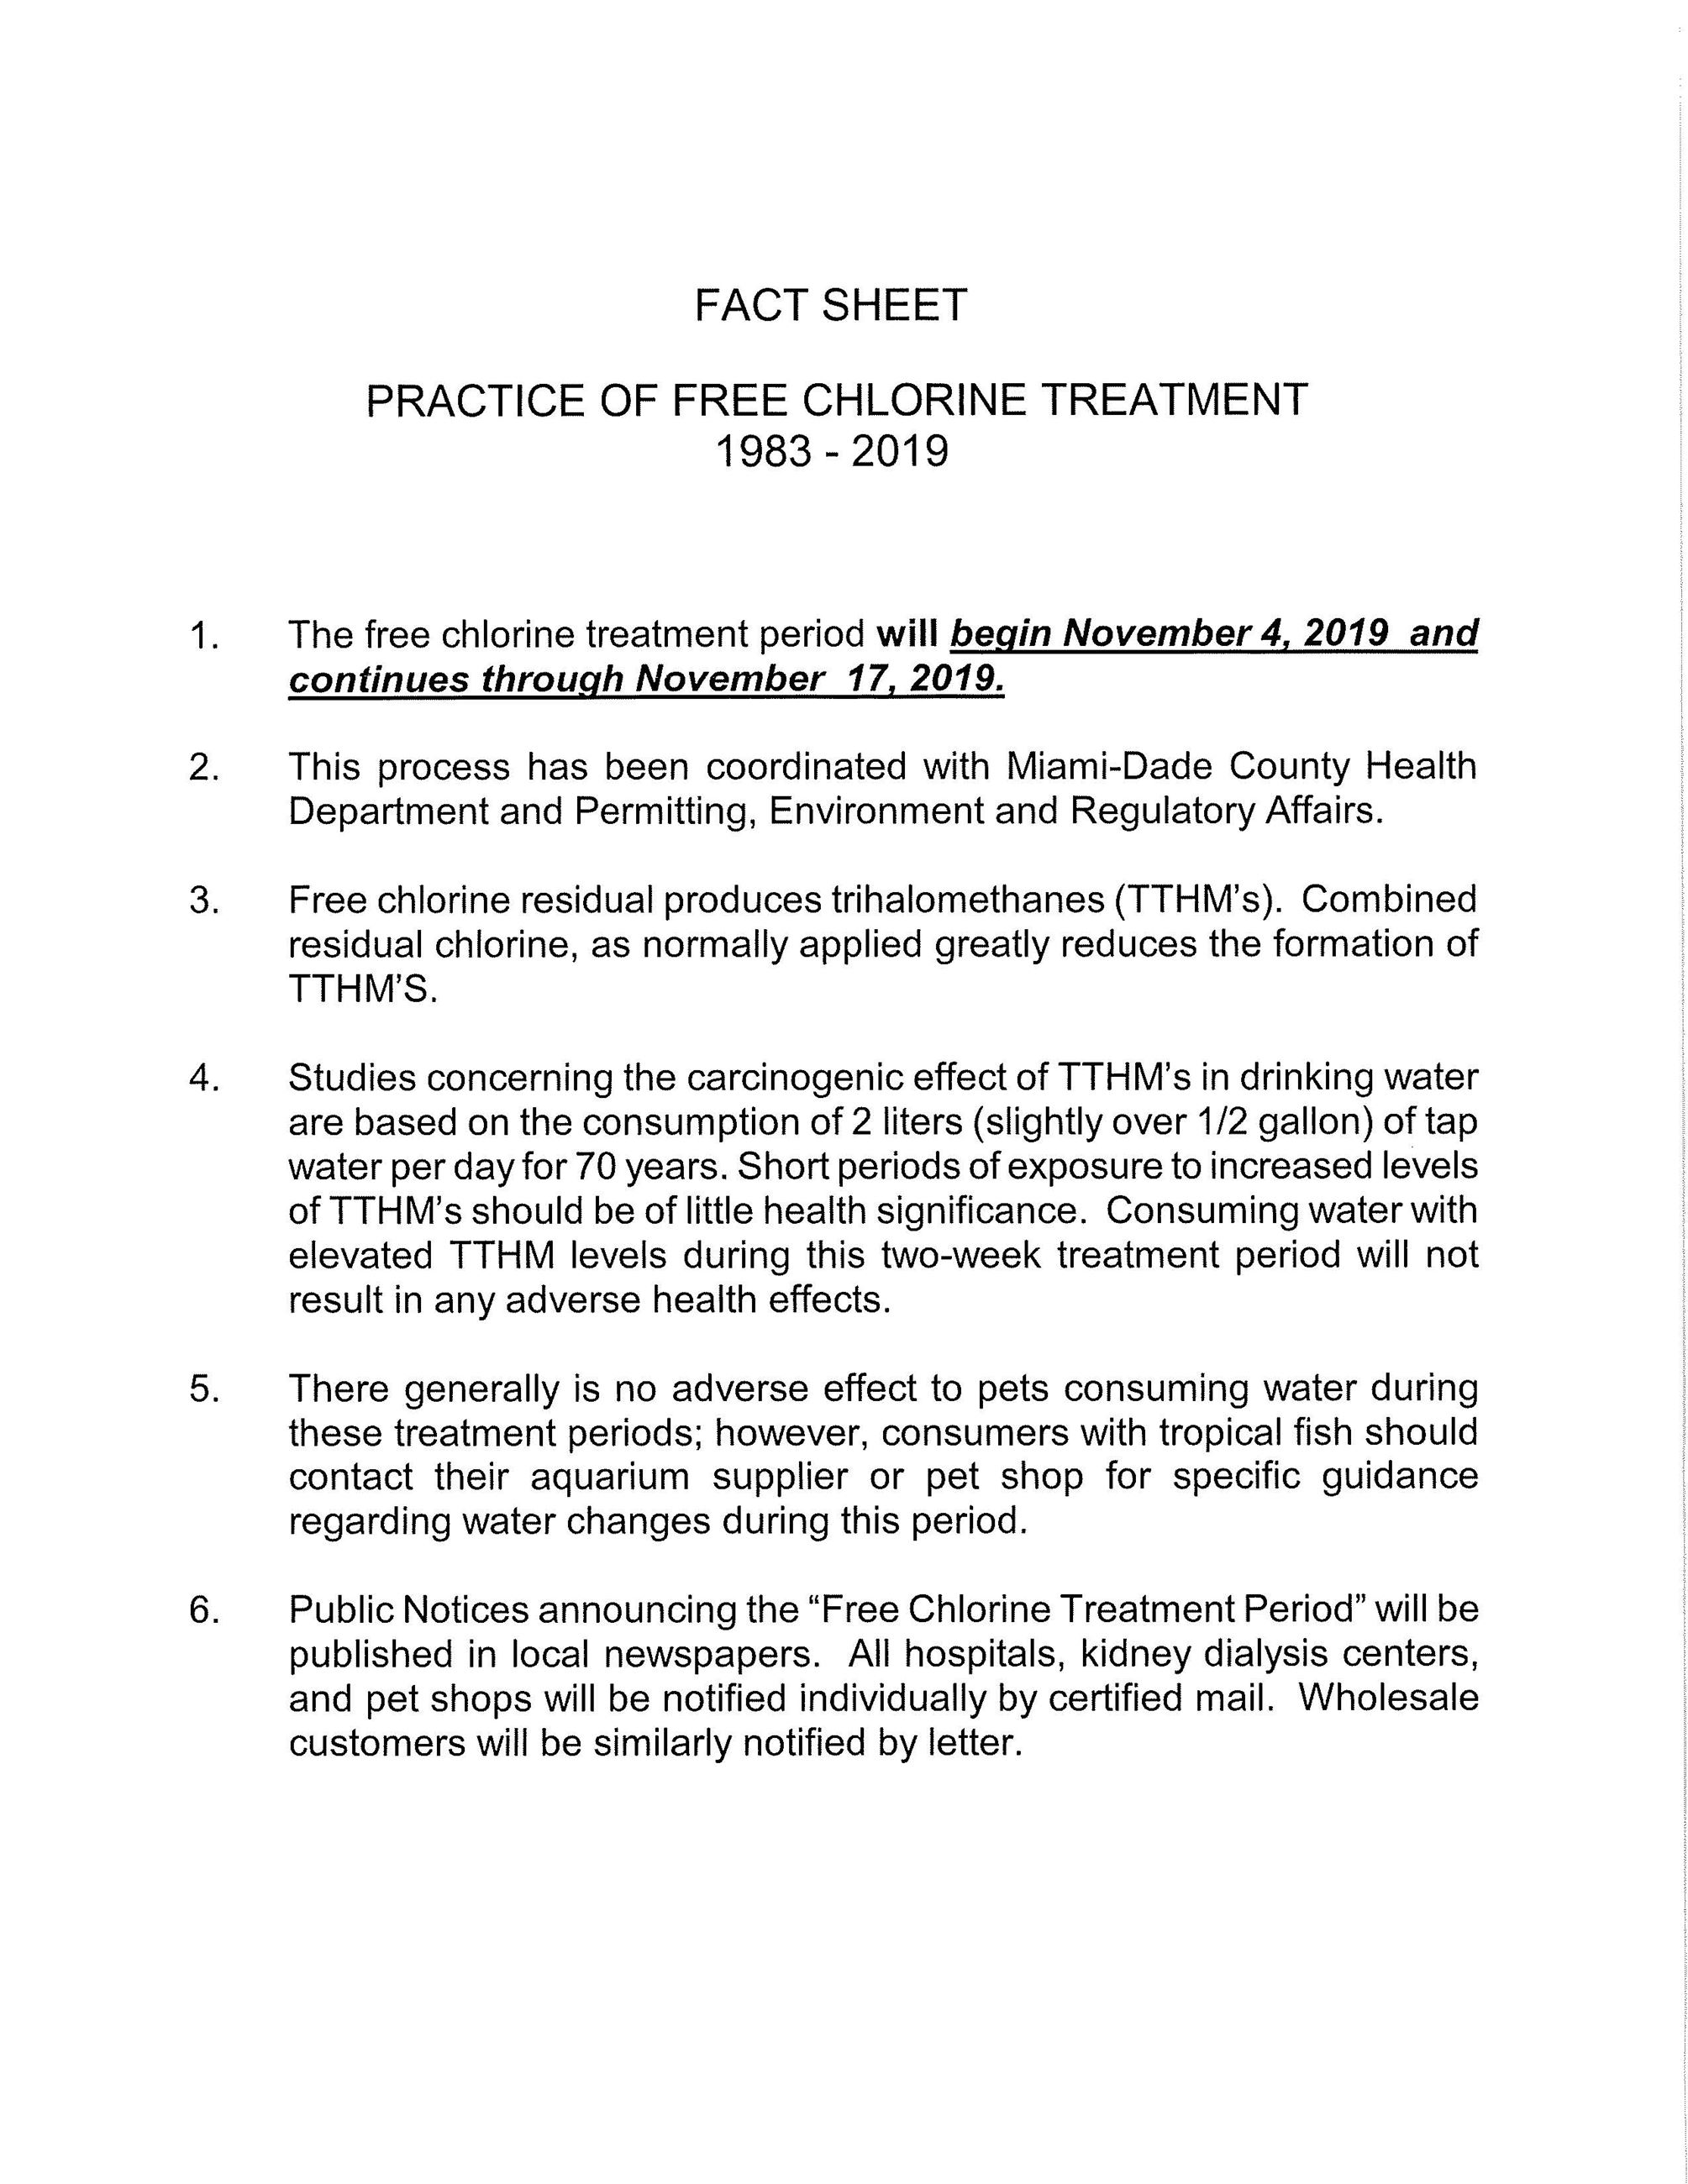 Fact Sheet Practice of Free Chlorine Treatment 1983 - 2019 1. The free chlorine treatment period wil